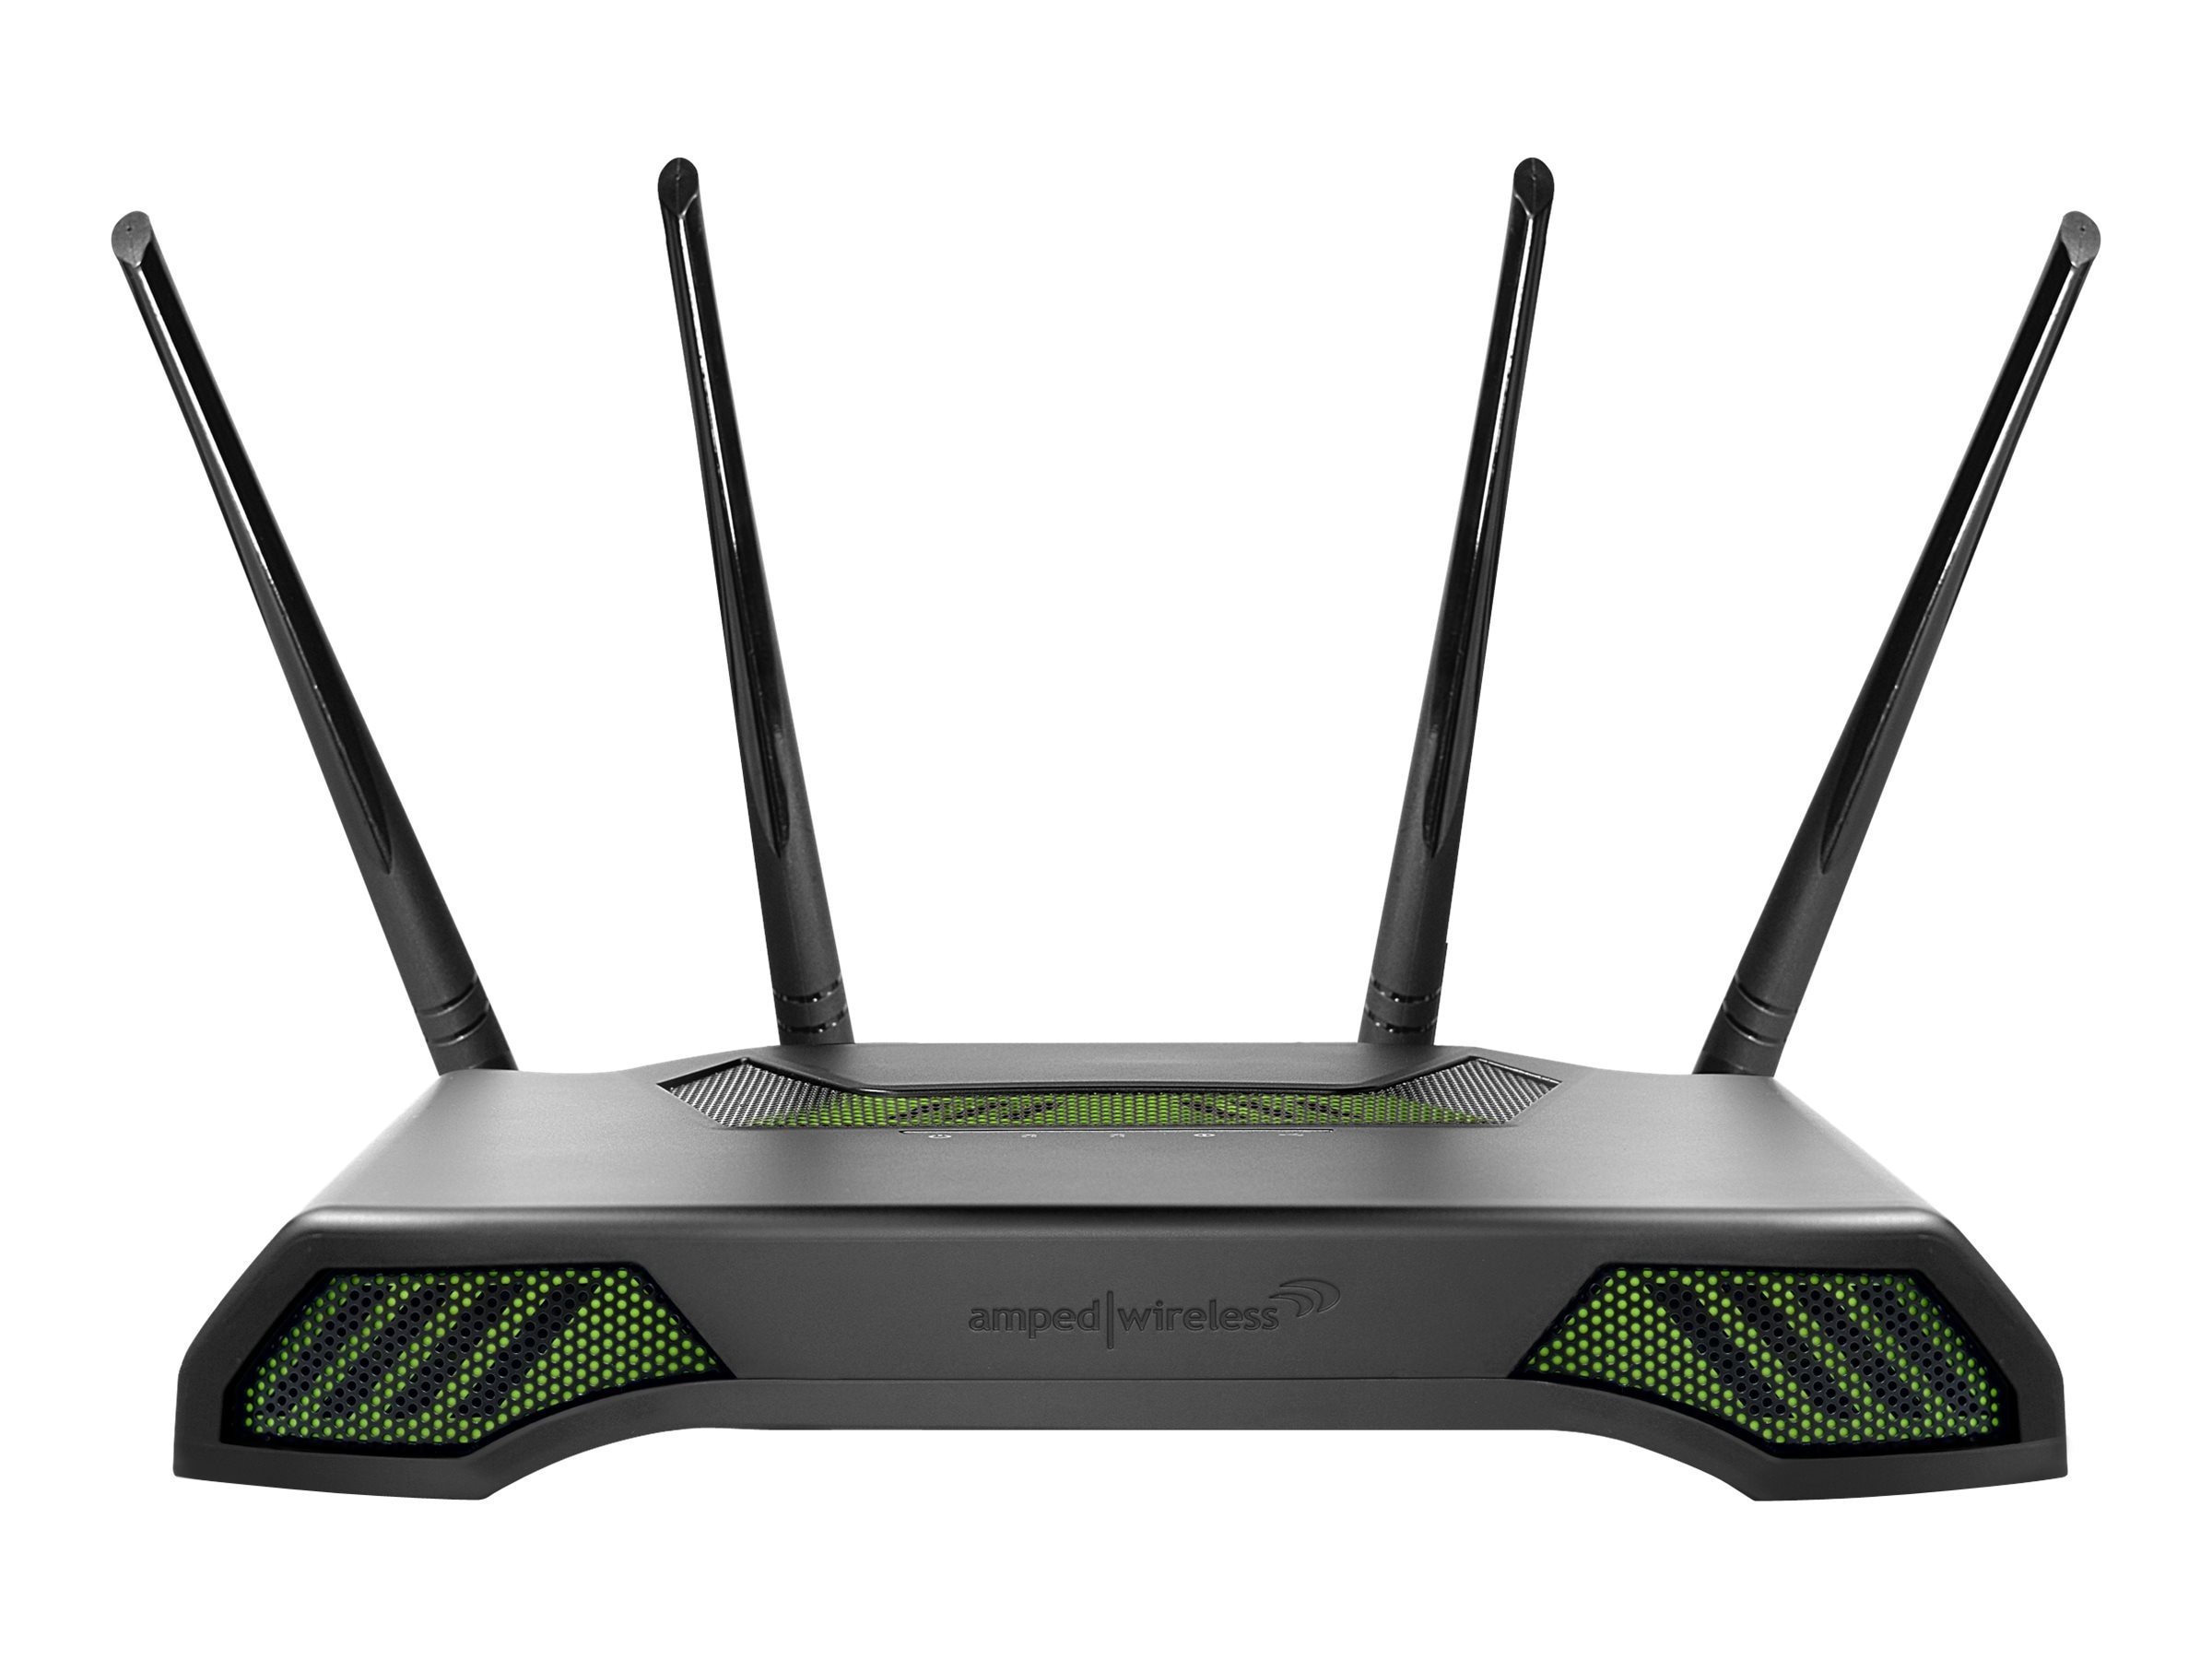 Amped Wireless RTA1900 Image 1